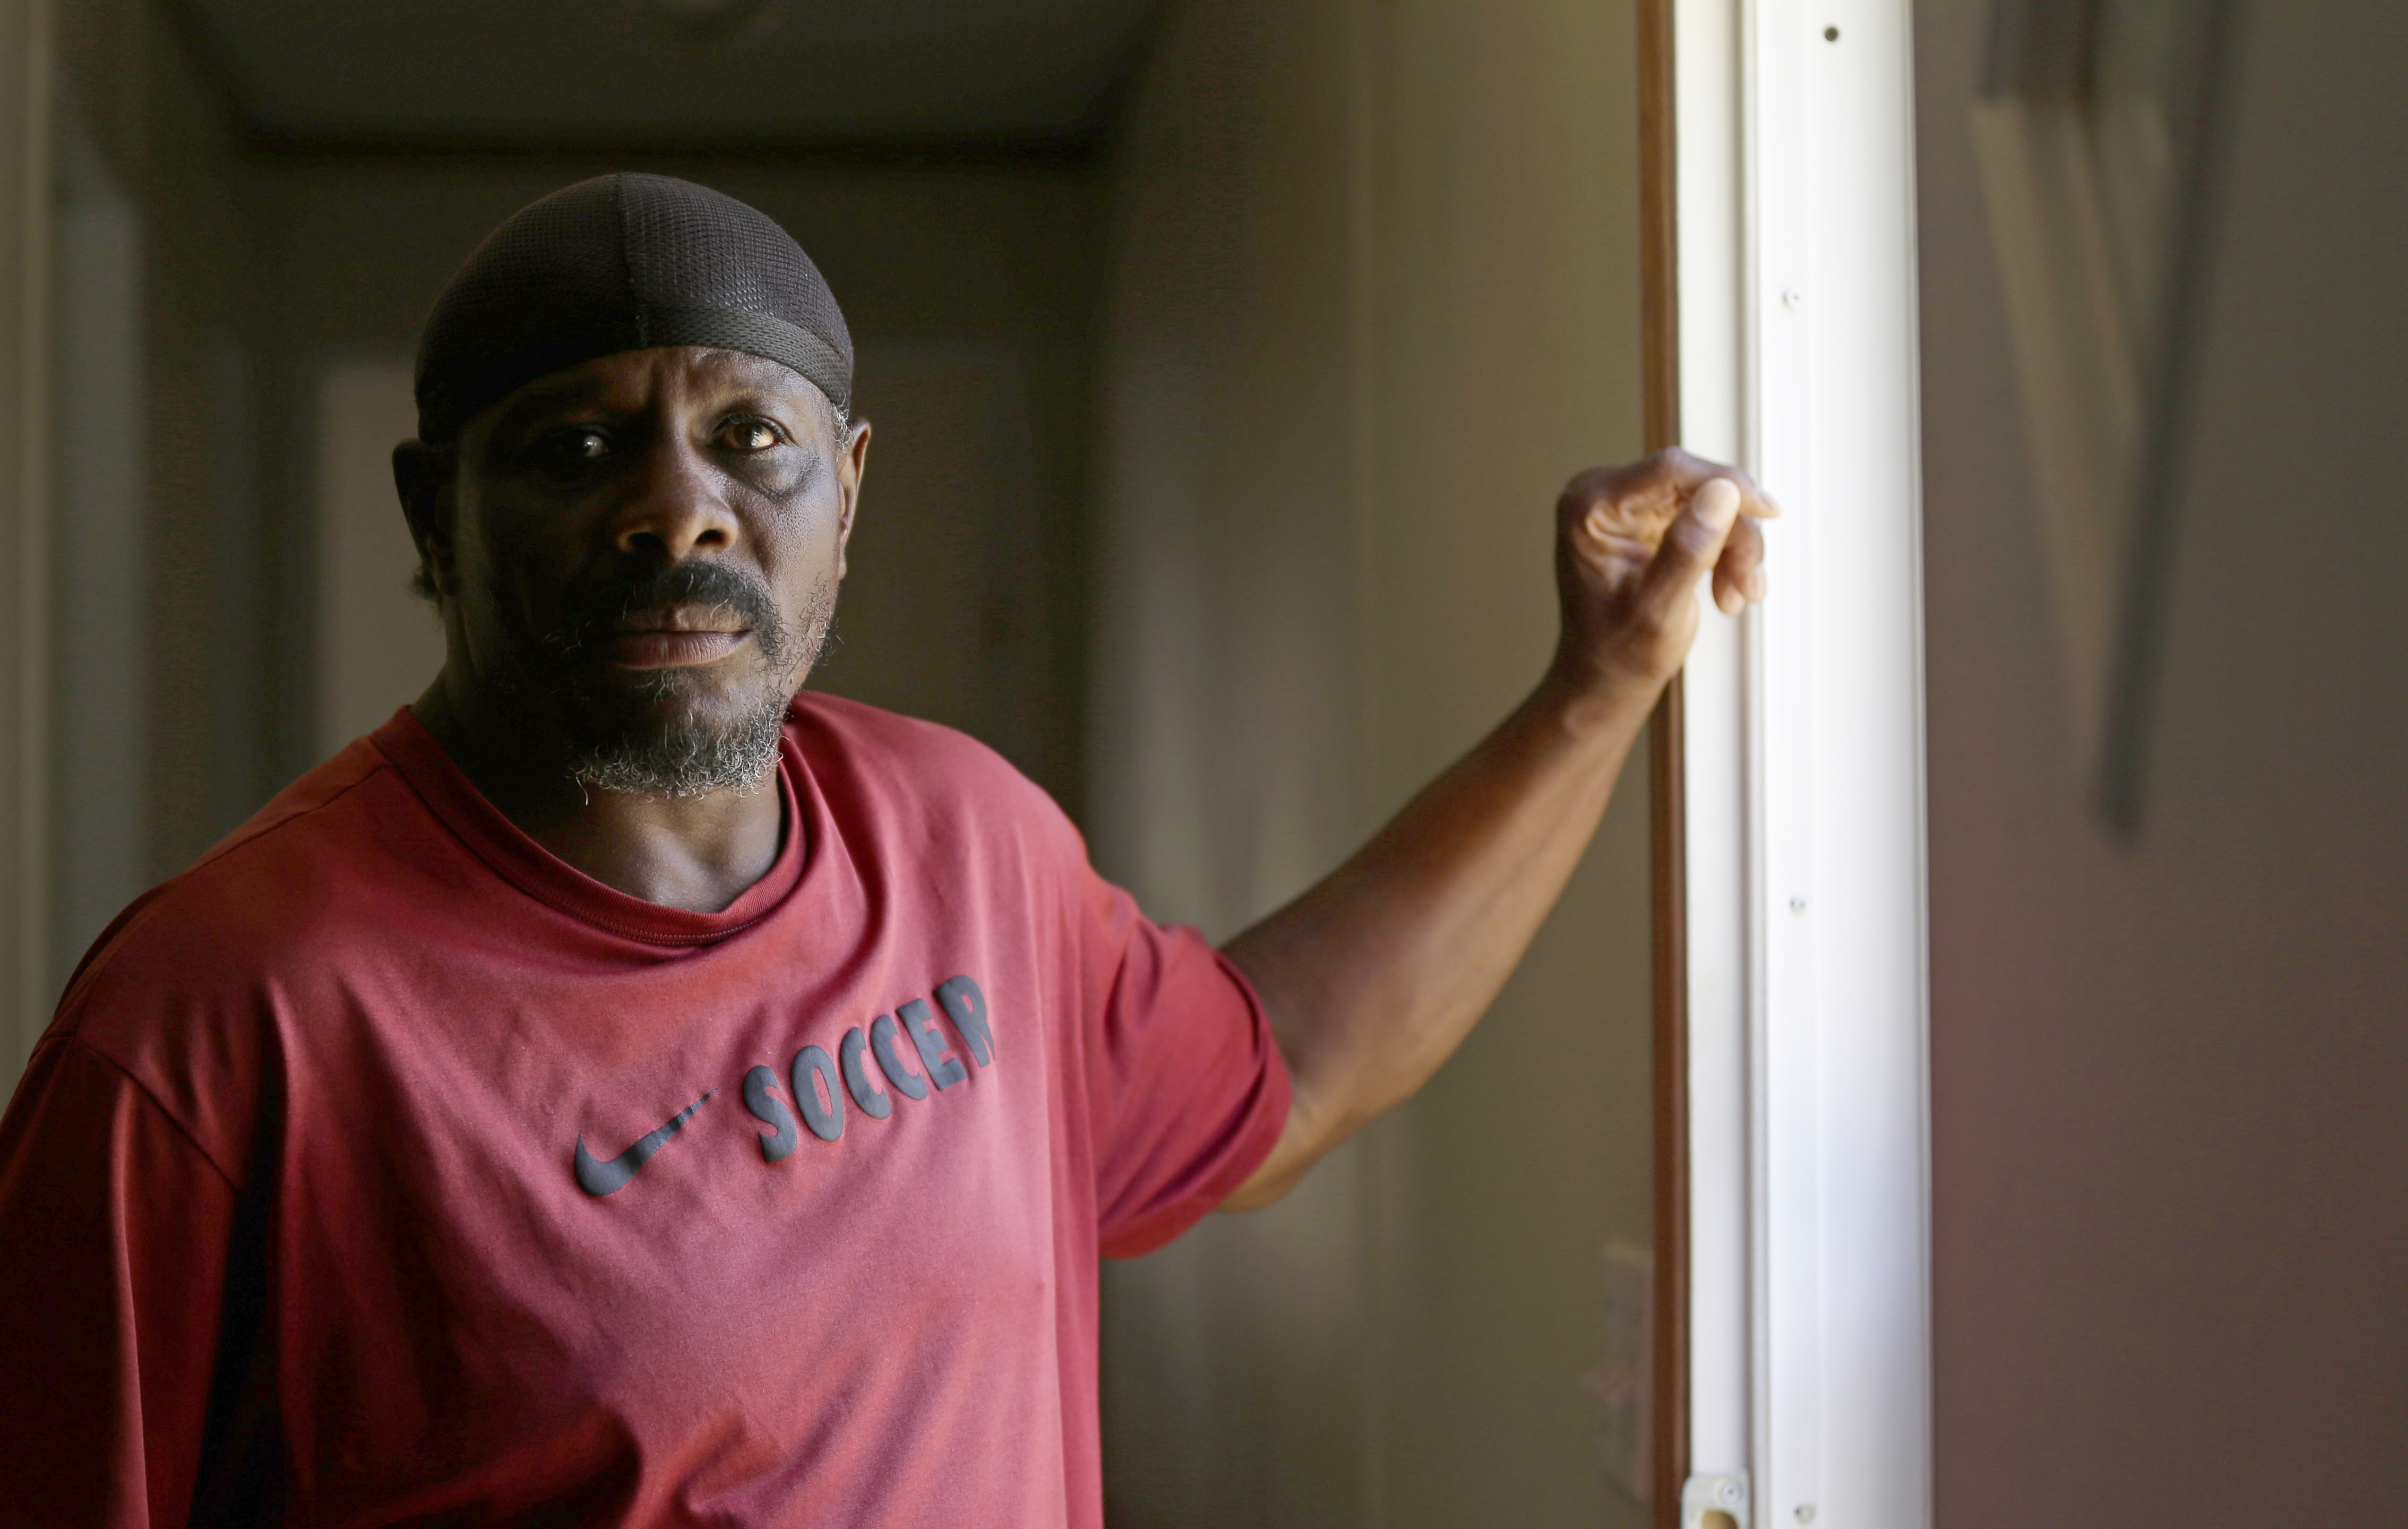 Residents slapped with eviction notices after AP story